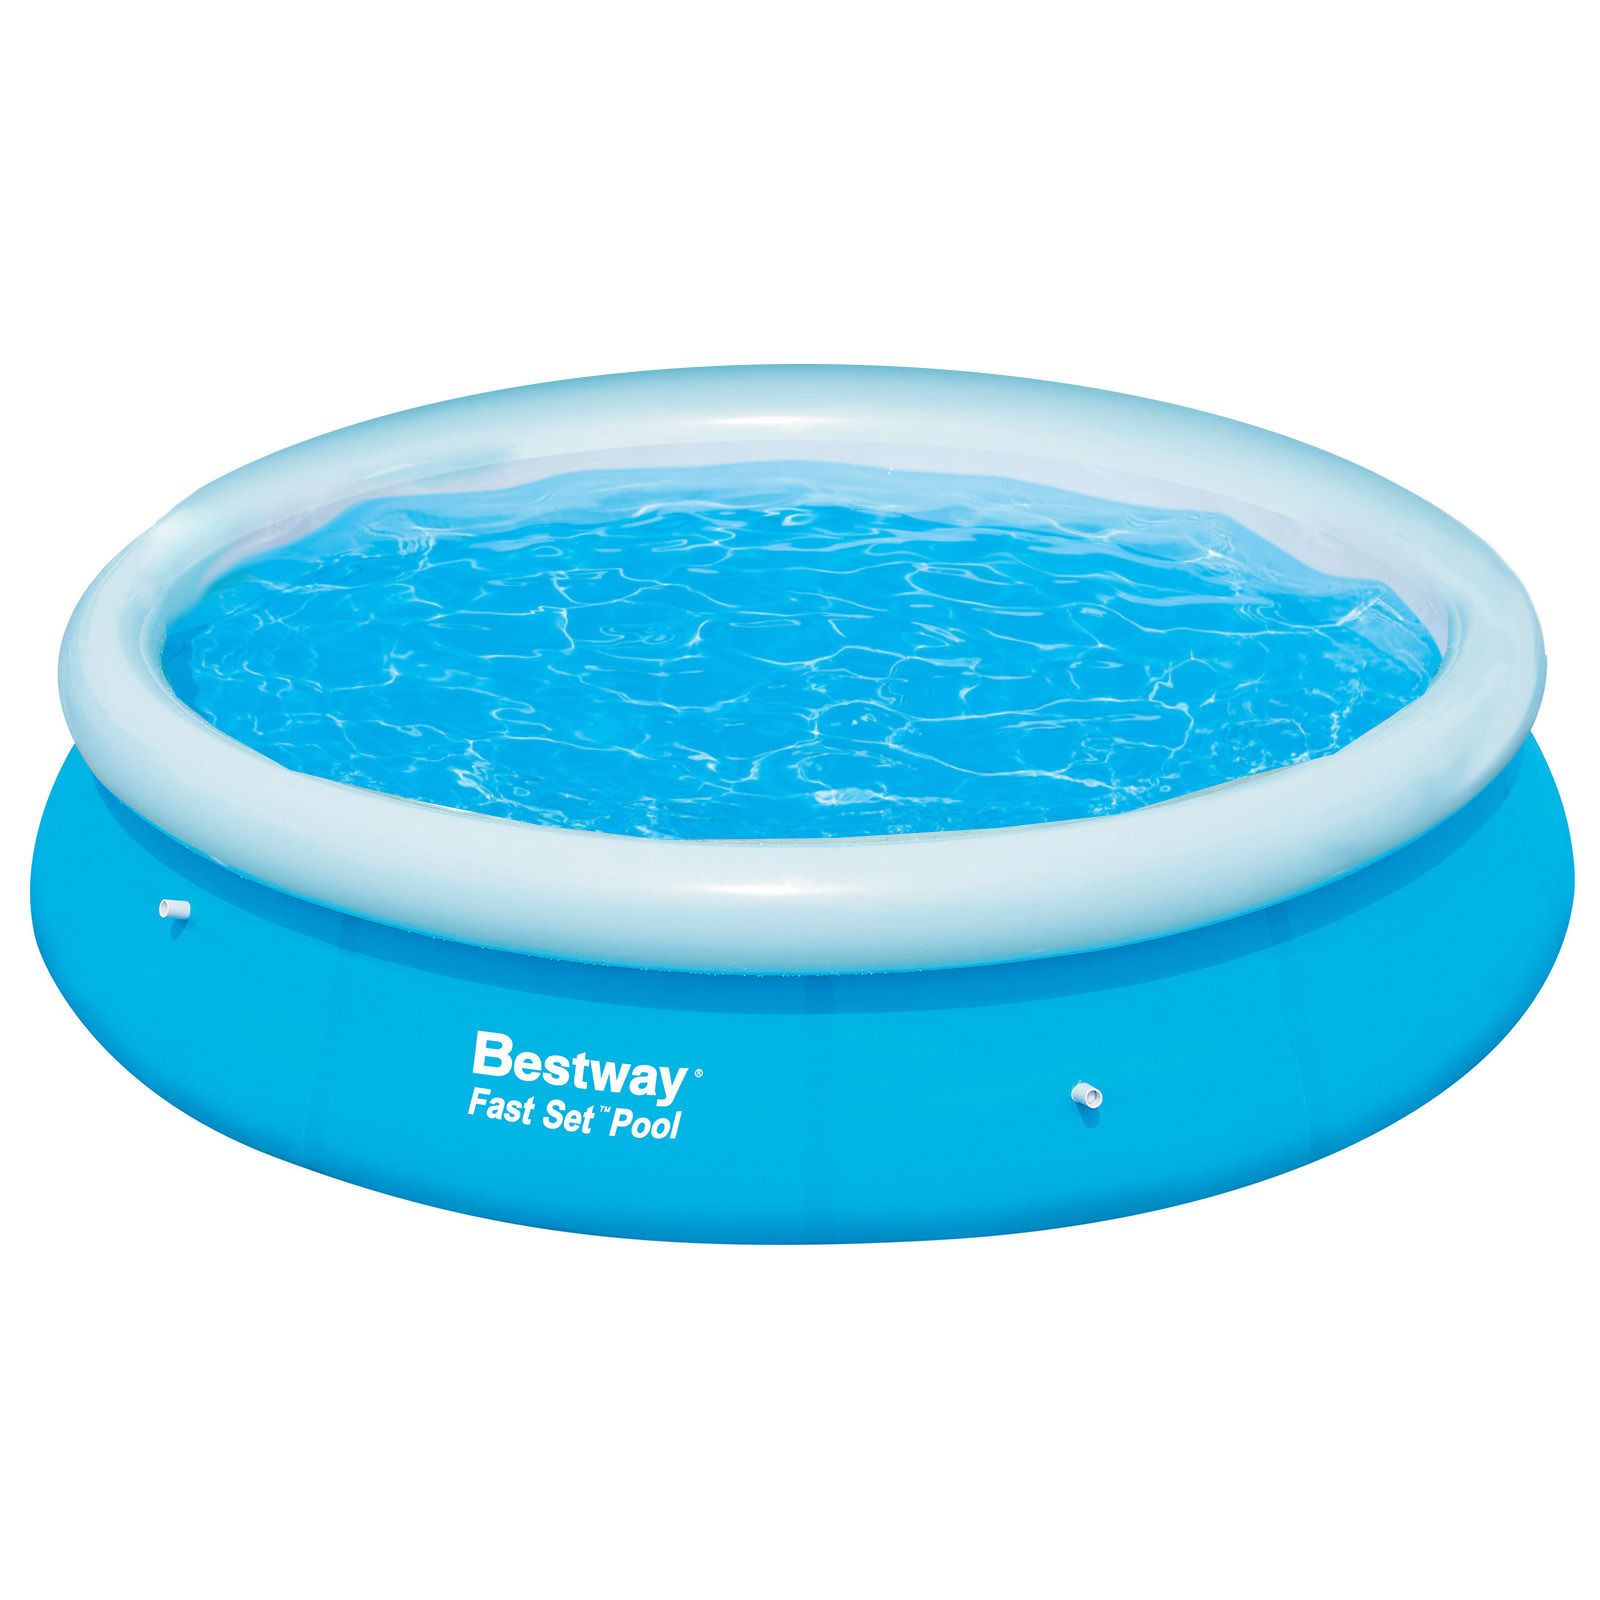 Bestway gonfiabile piscina chiaro fast set funfamily for Ebay piscinas